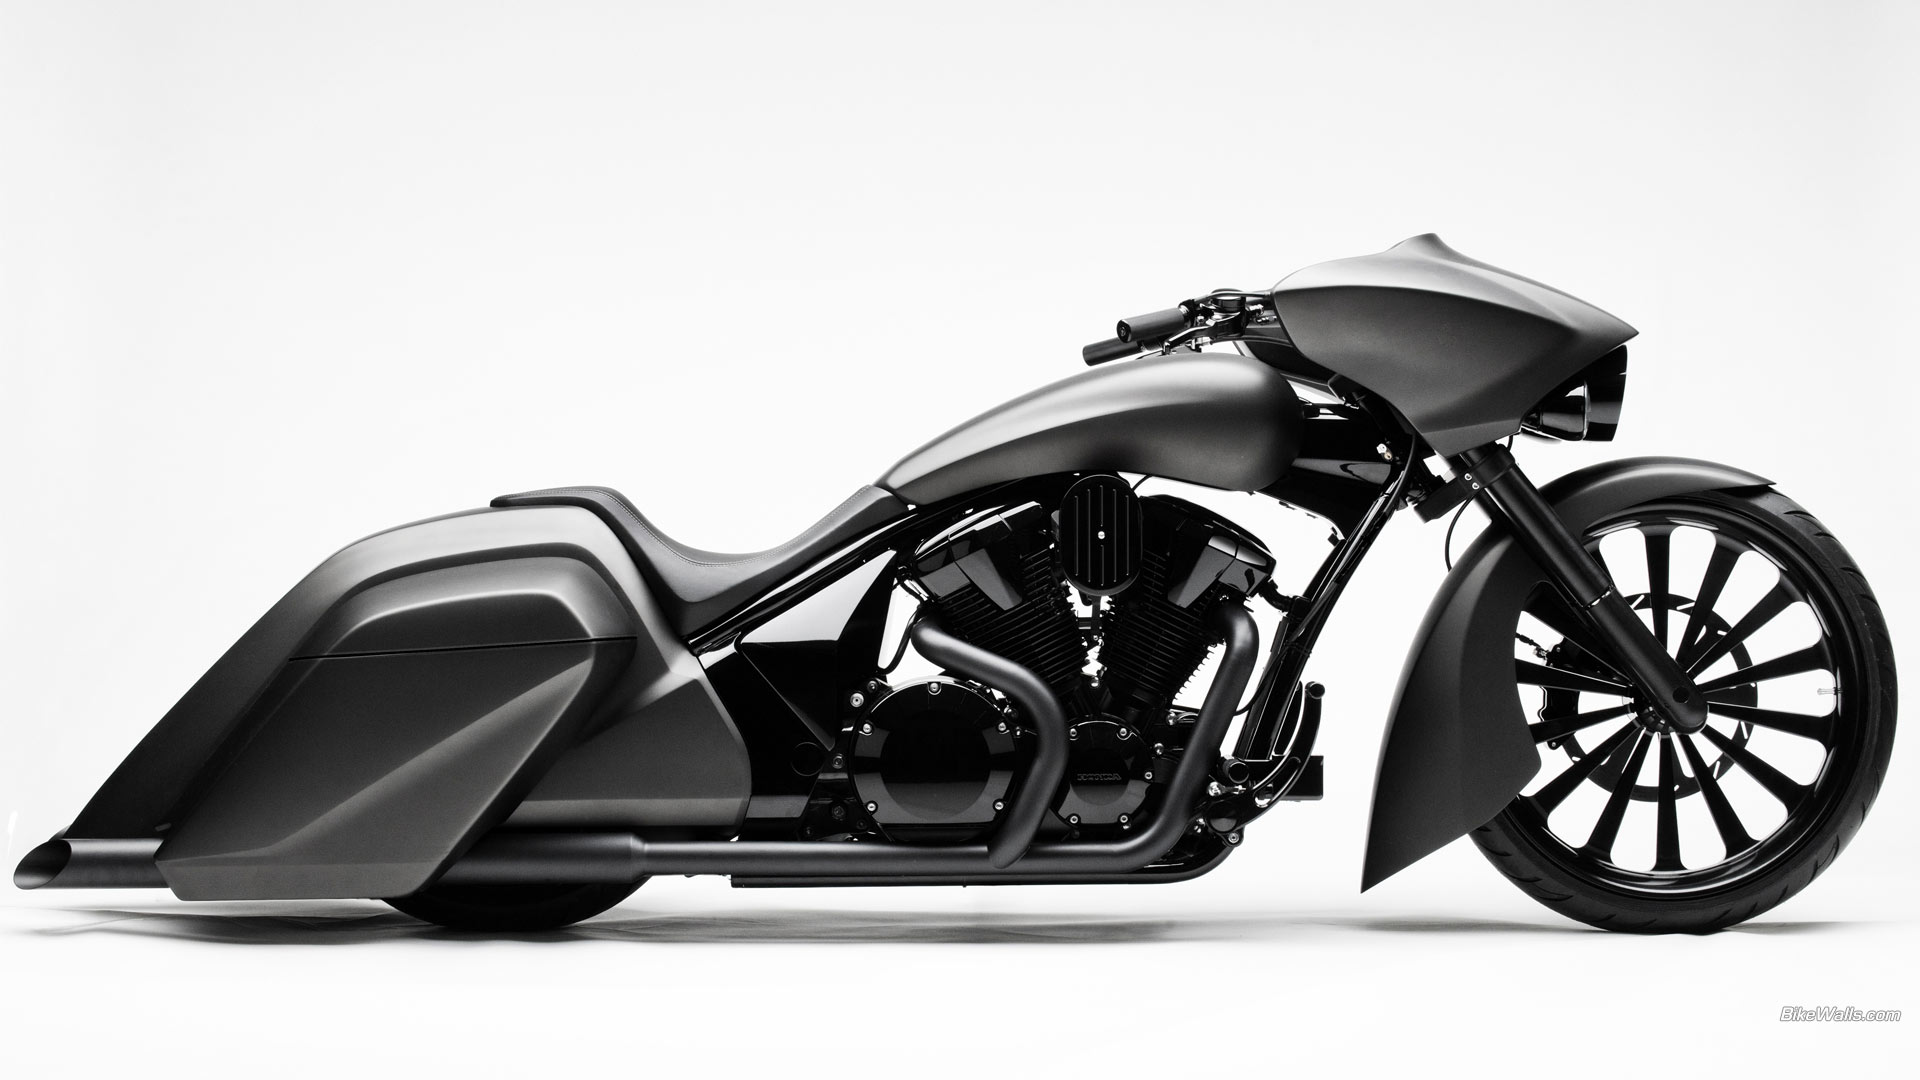 Best images about Paint jobs on Pinterest  Road glide custom 1920x1080